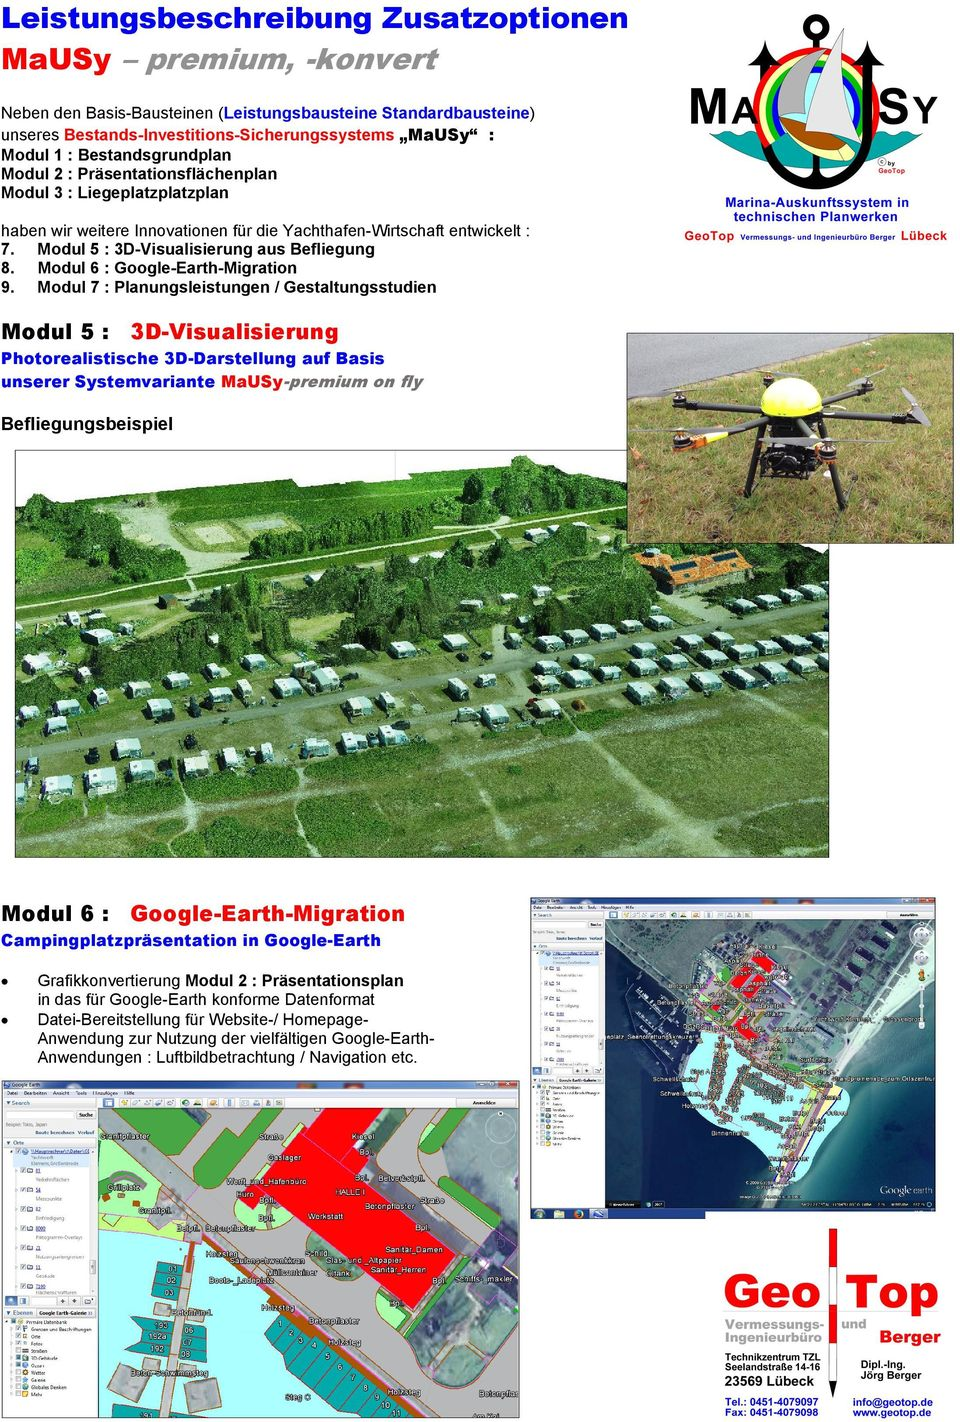 Modul 5 : 3D-Visualisierung aus Befliegung 8. Modul 6 : Google-Earth-Migration 9.